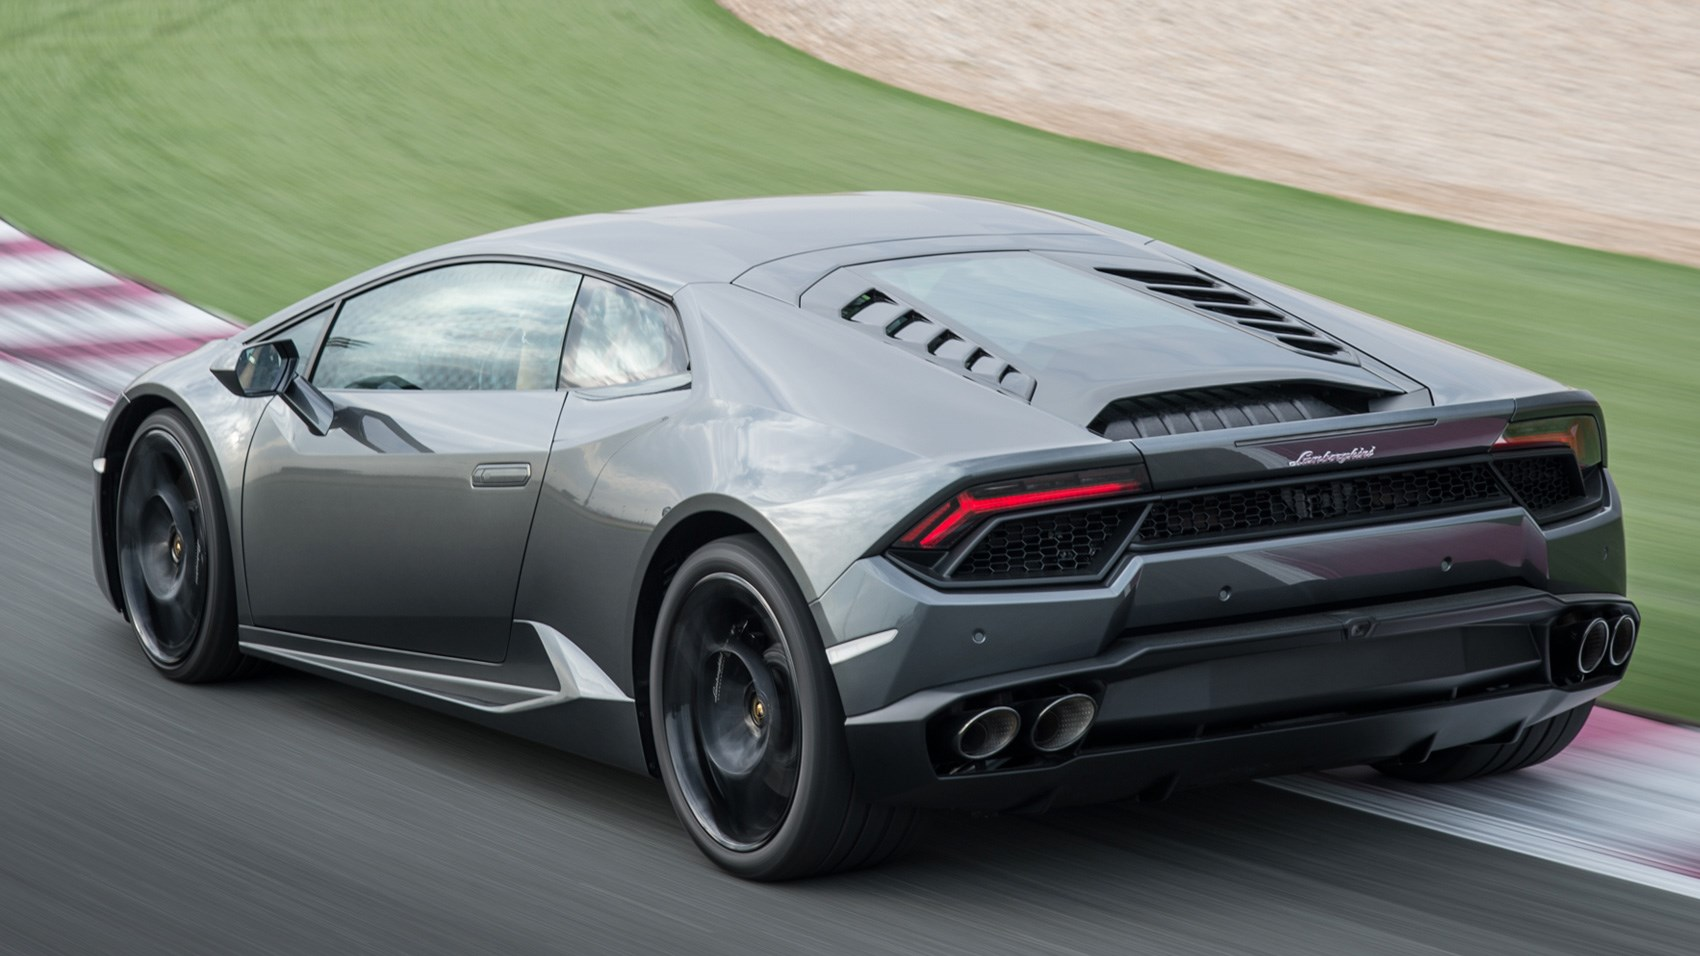 Image result for Lamborghini Huracán